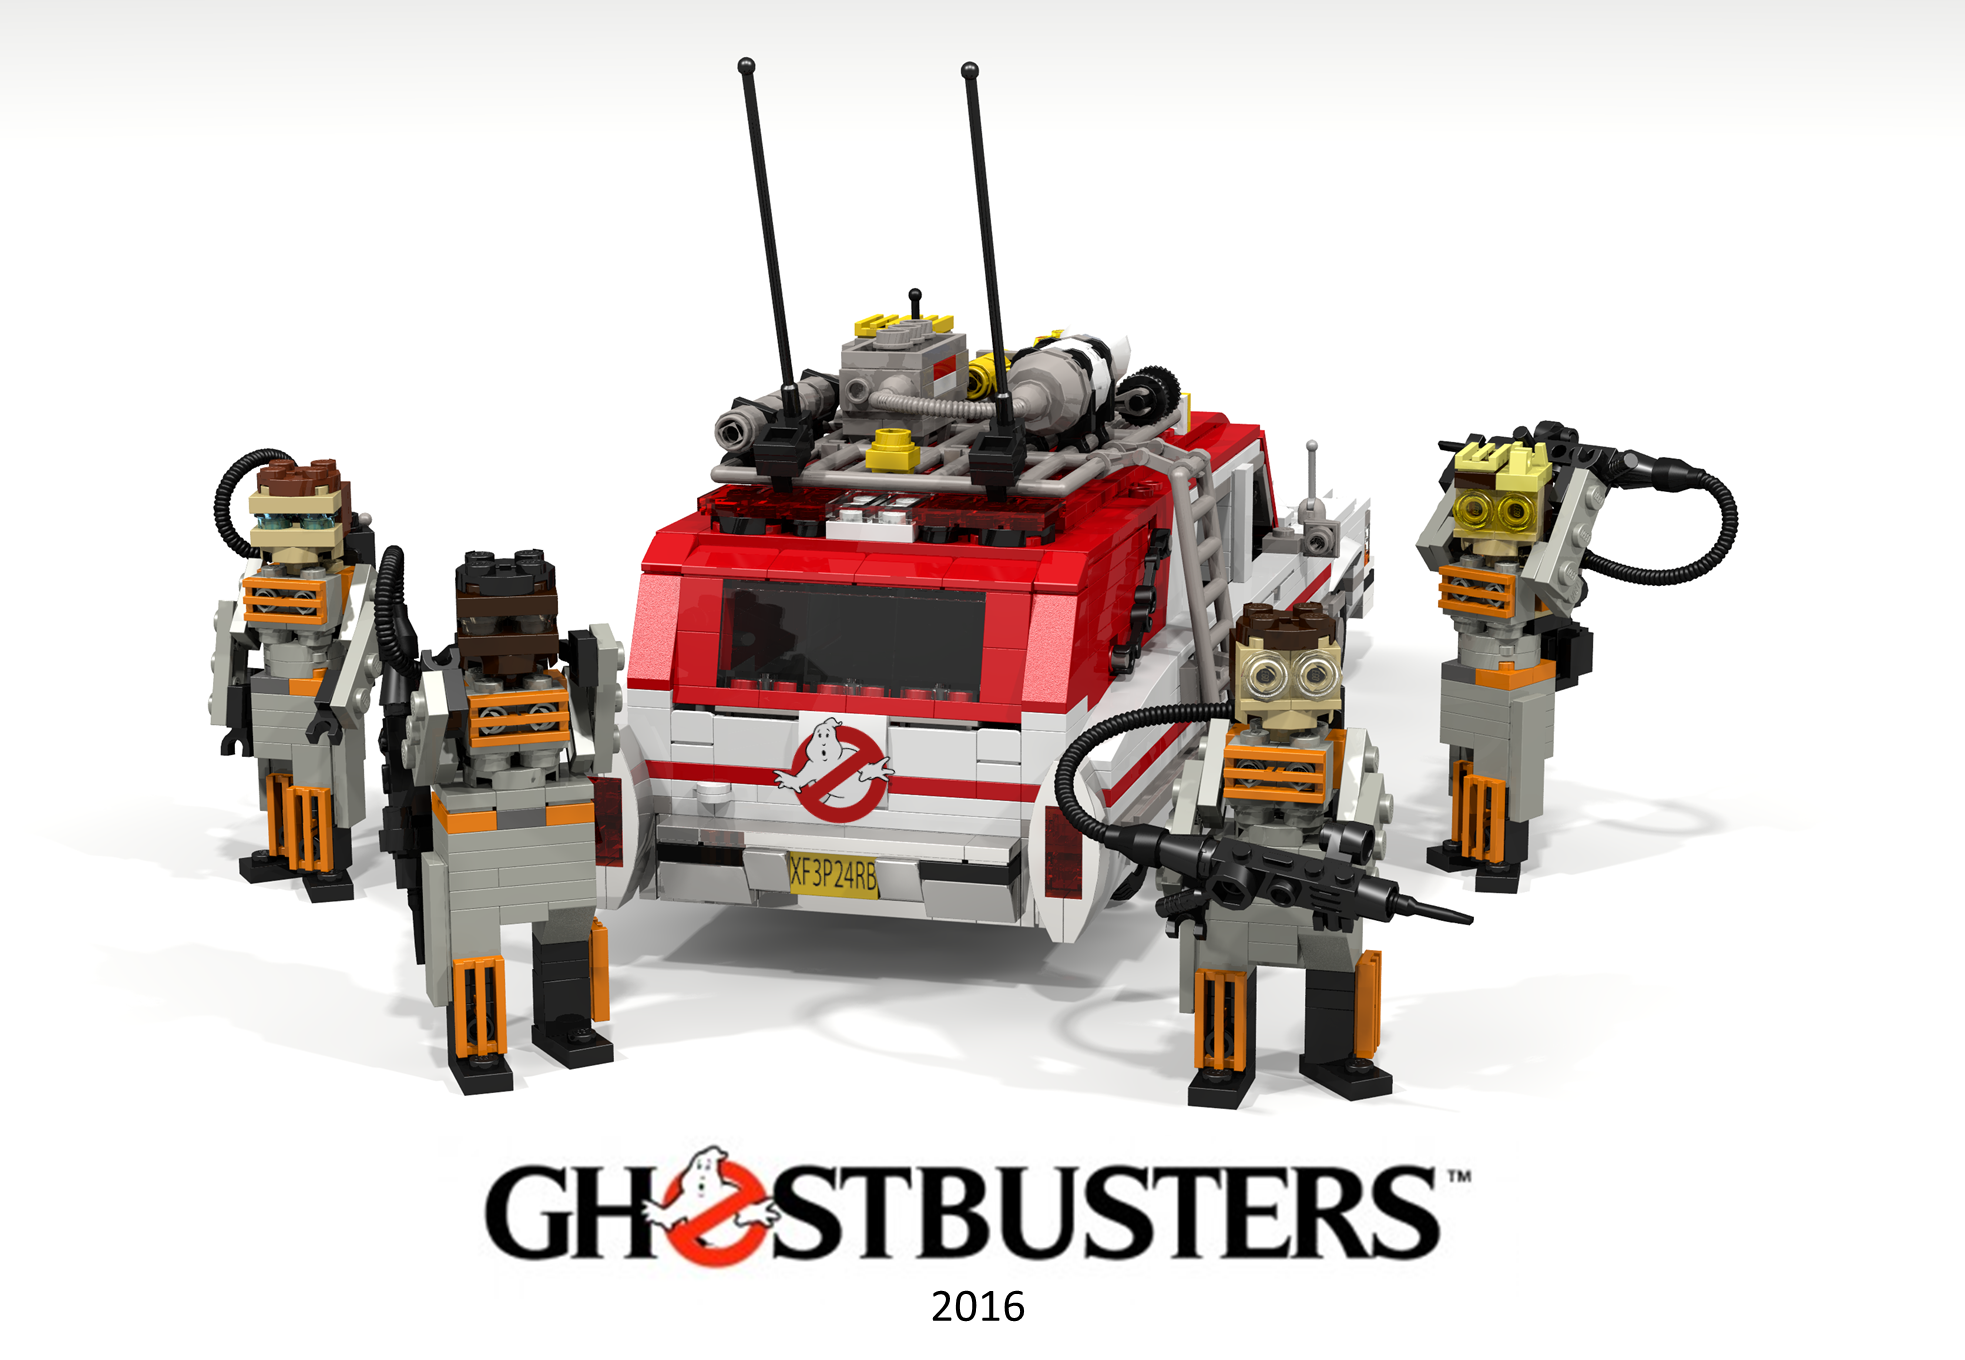 cadillac_1985_series_70_fleetwood_-_ghostbusters_ecto1_03.png